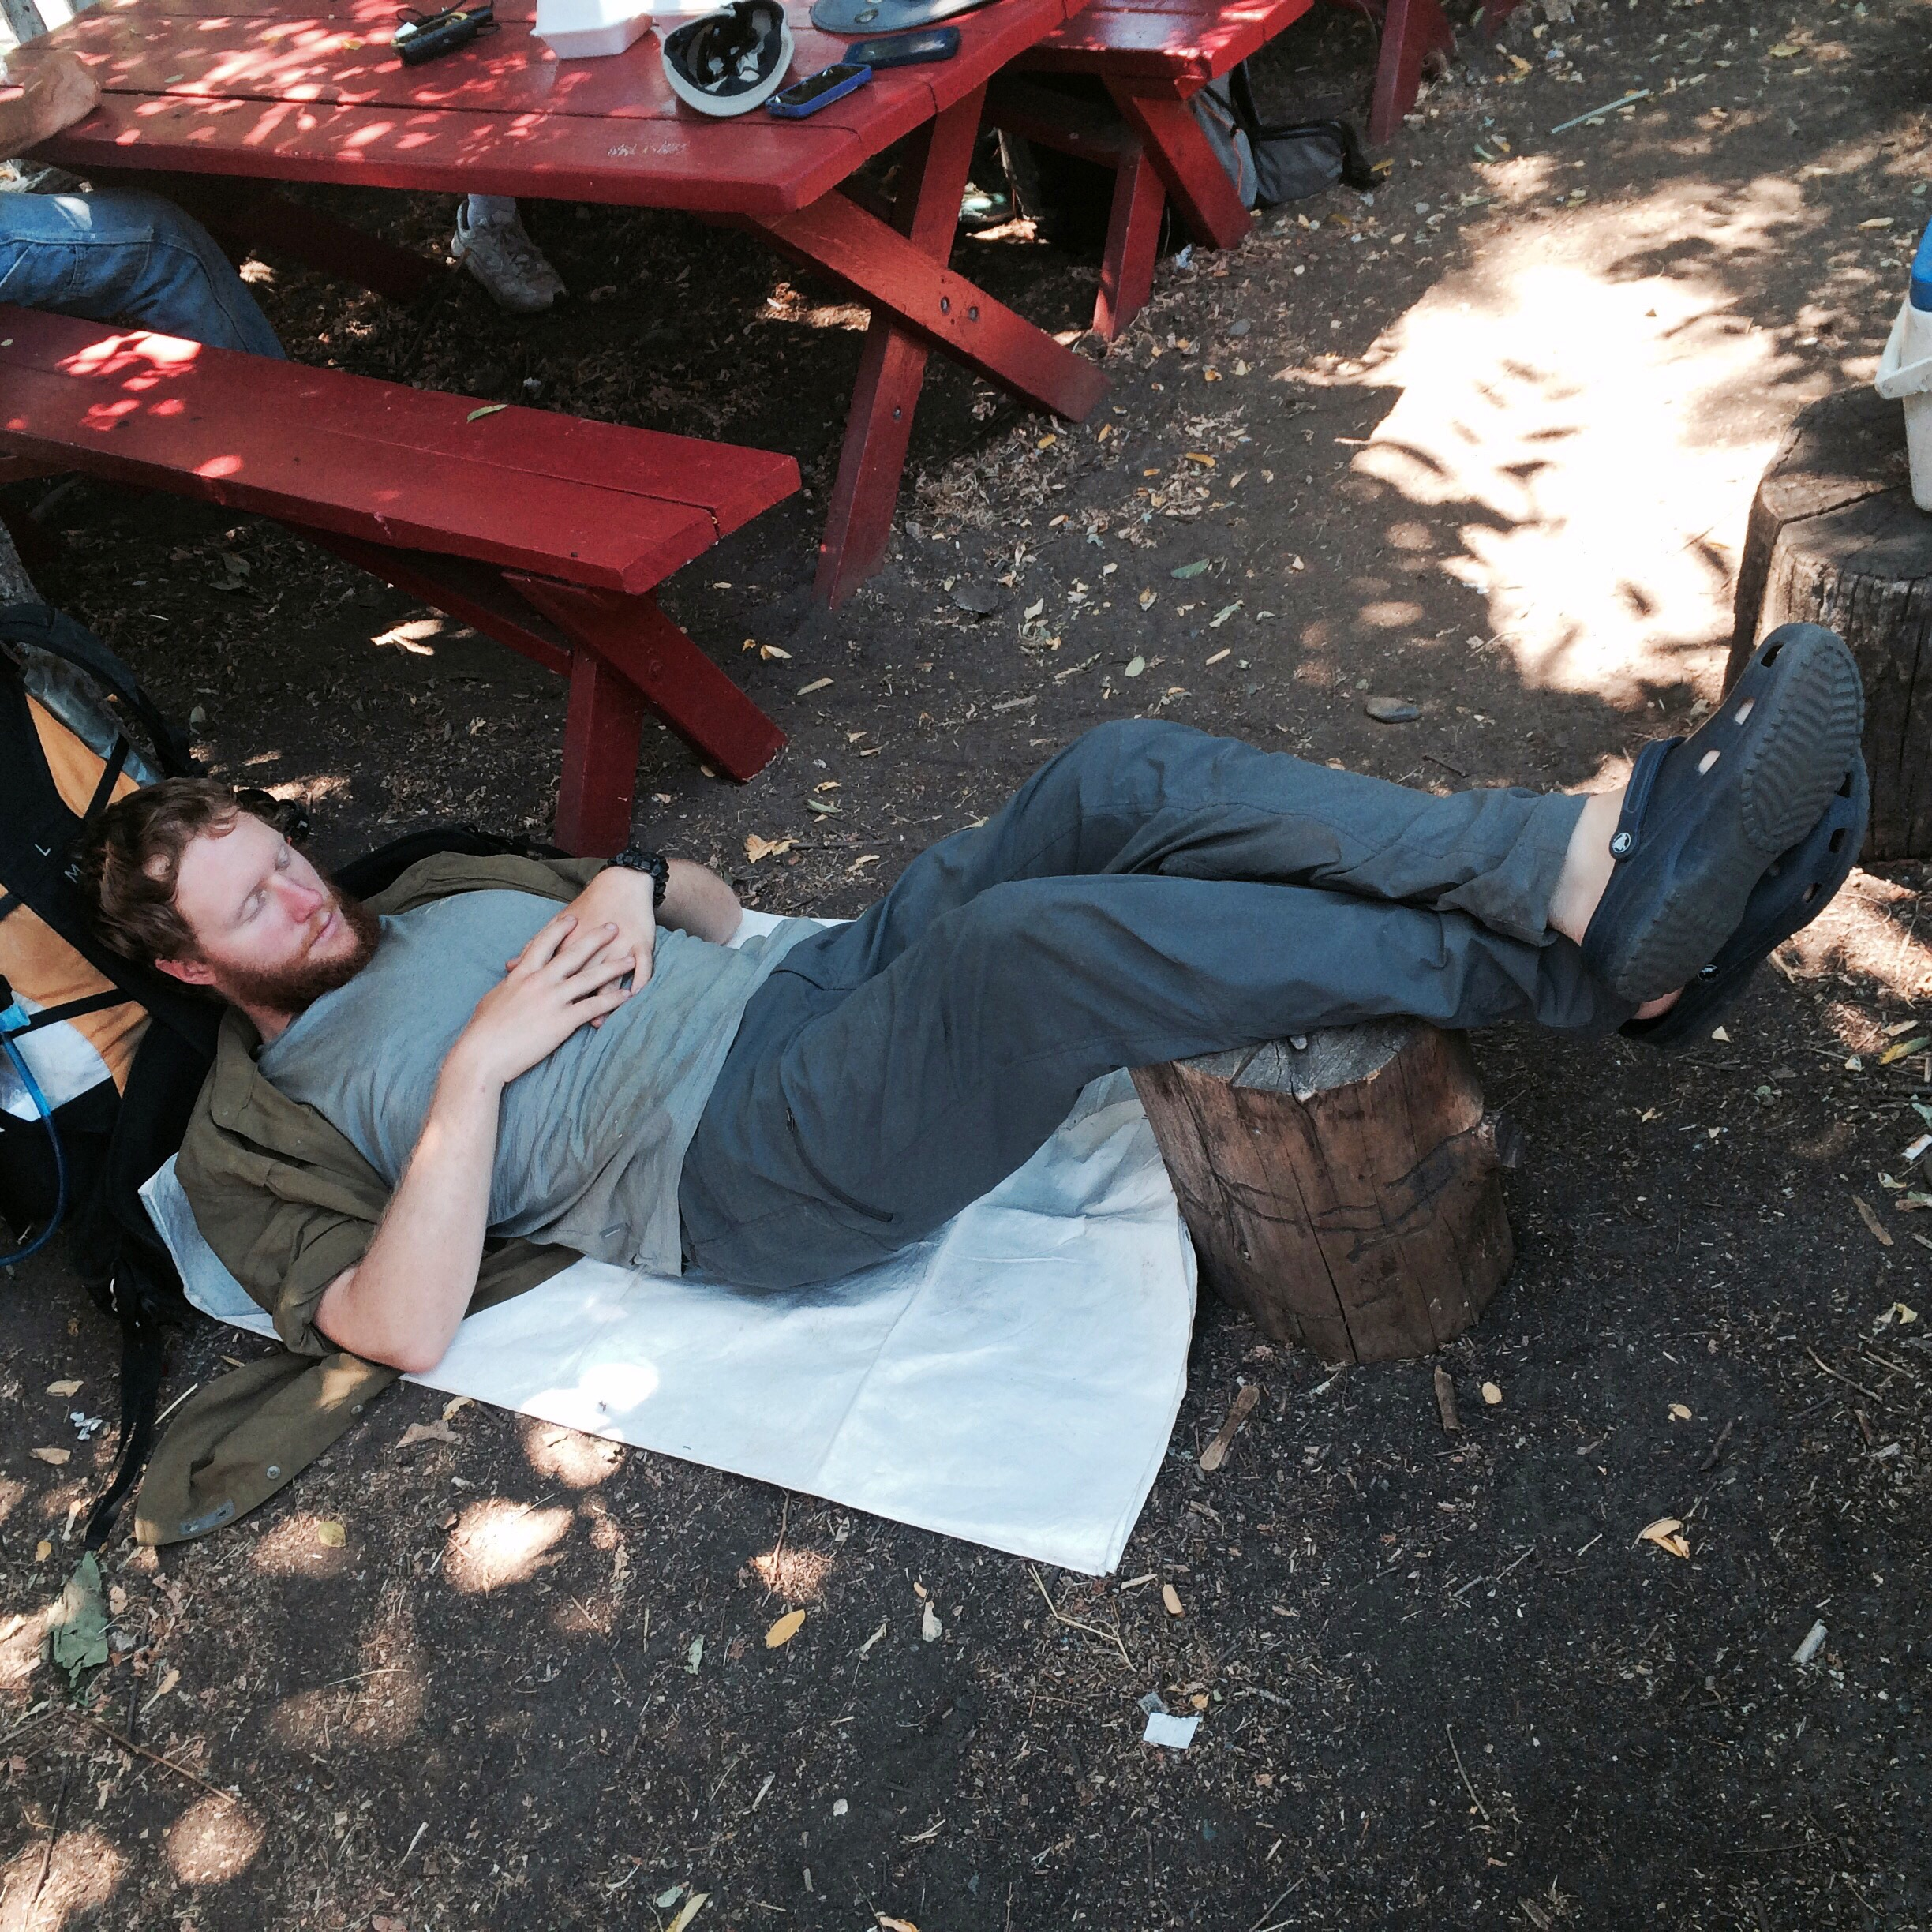 Naptime in Seiad Valley waiting out the heat.